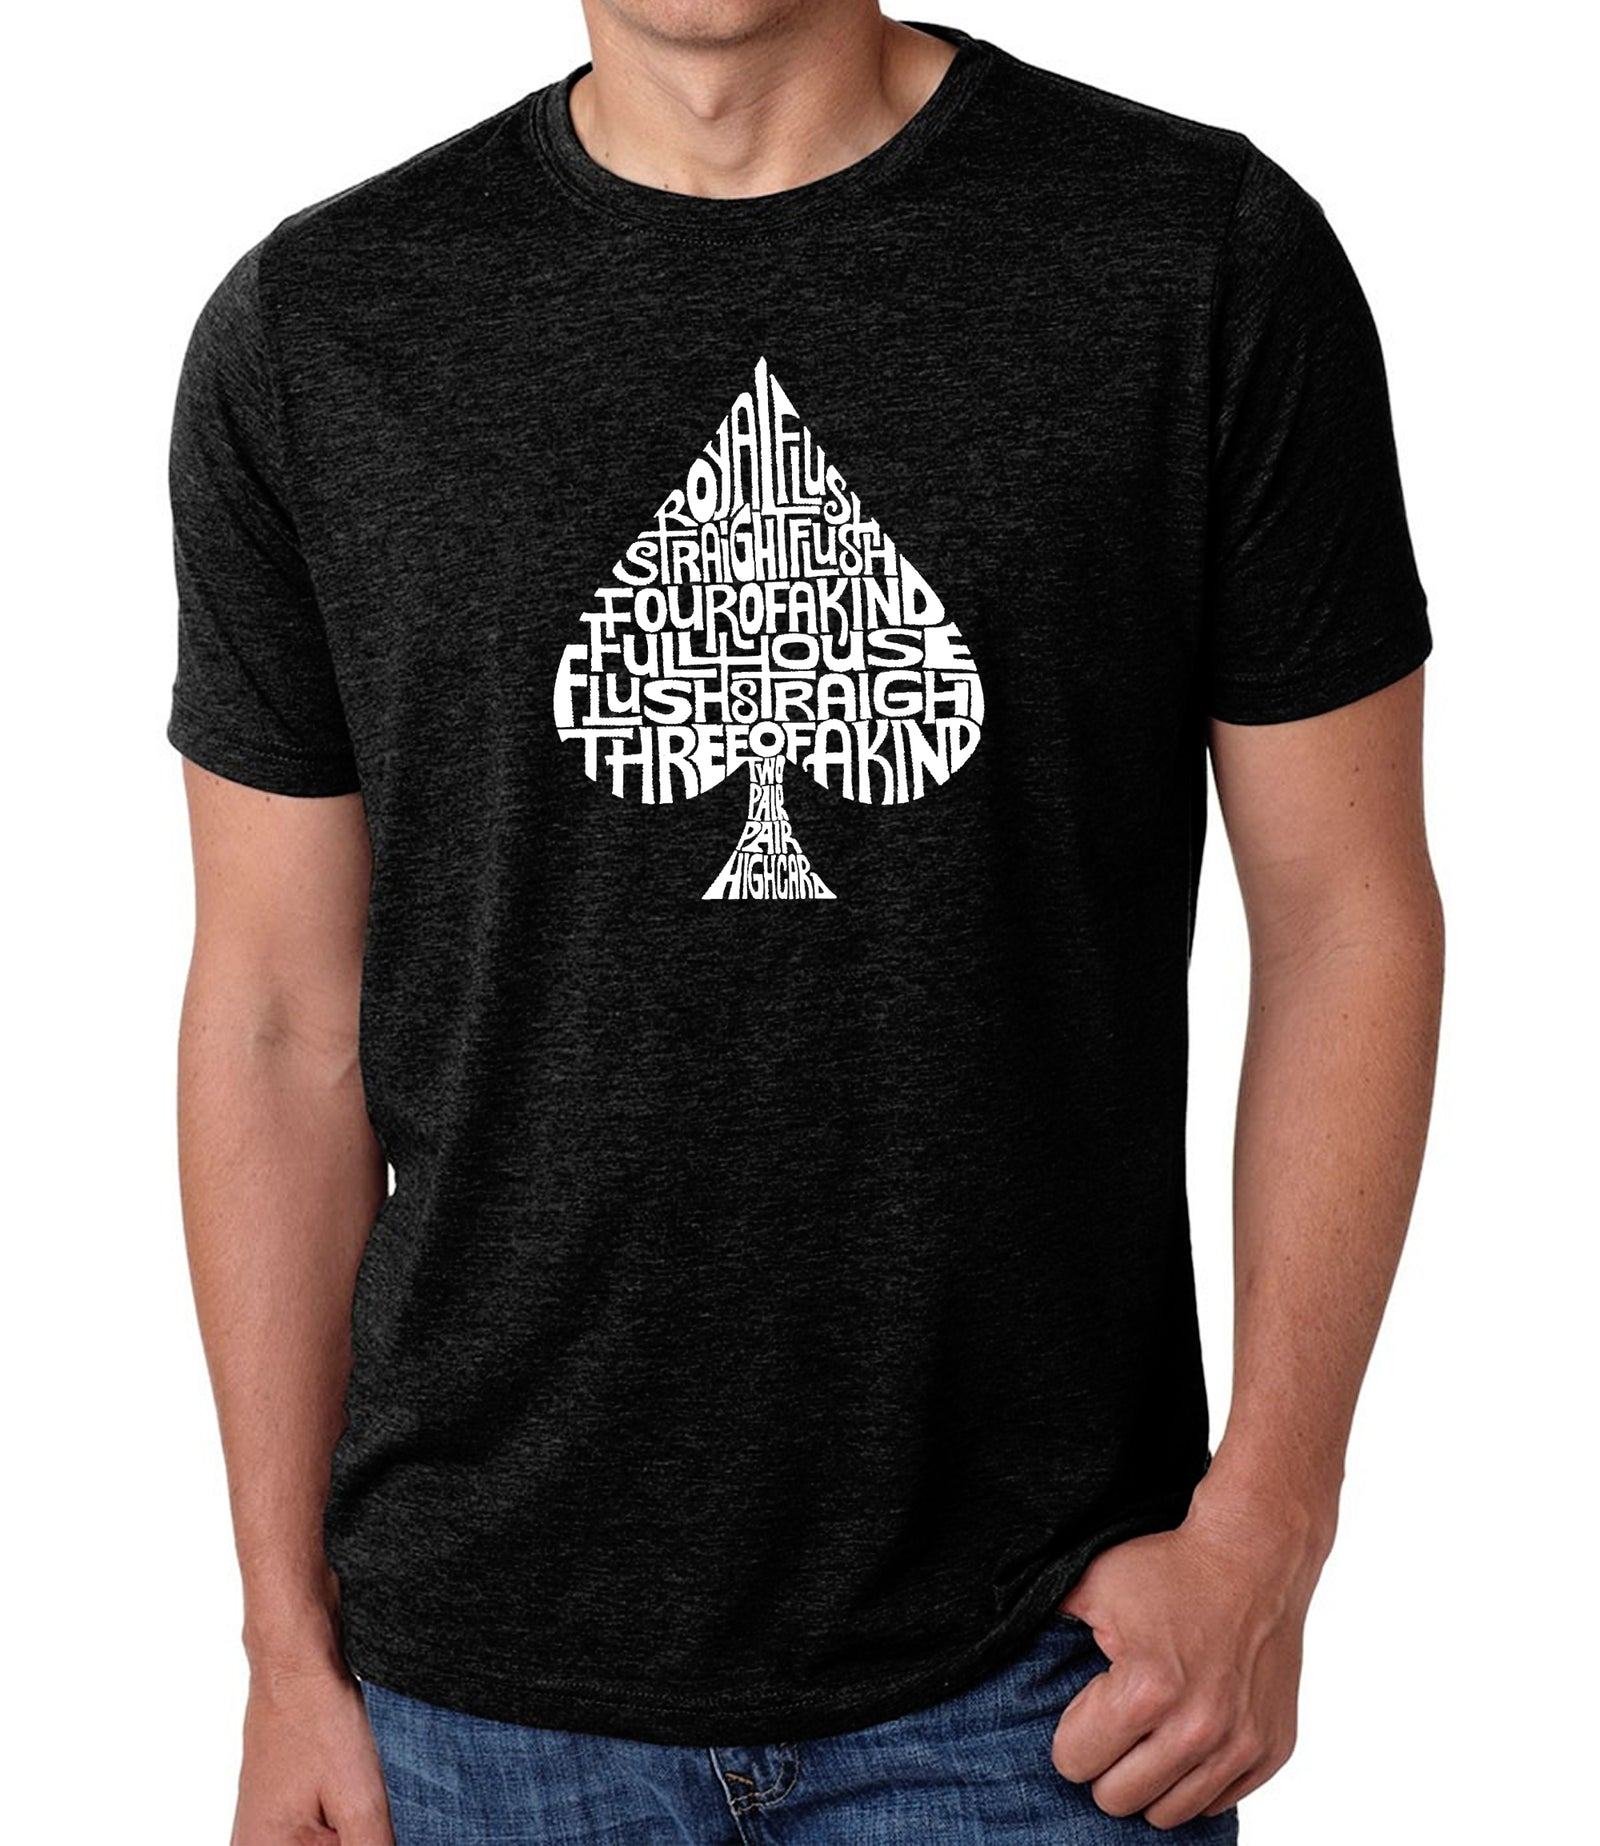 Men's Premium Blend Word Art T-shirt - ORDER OF WINNING POKER HANDS